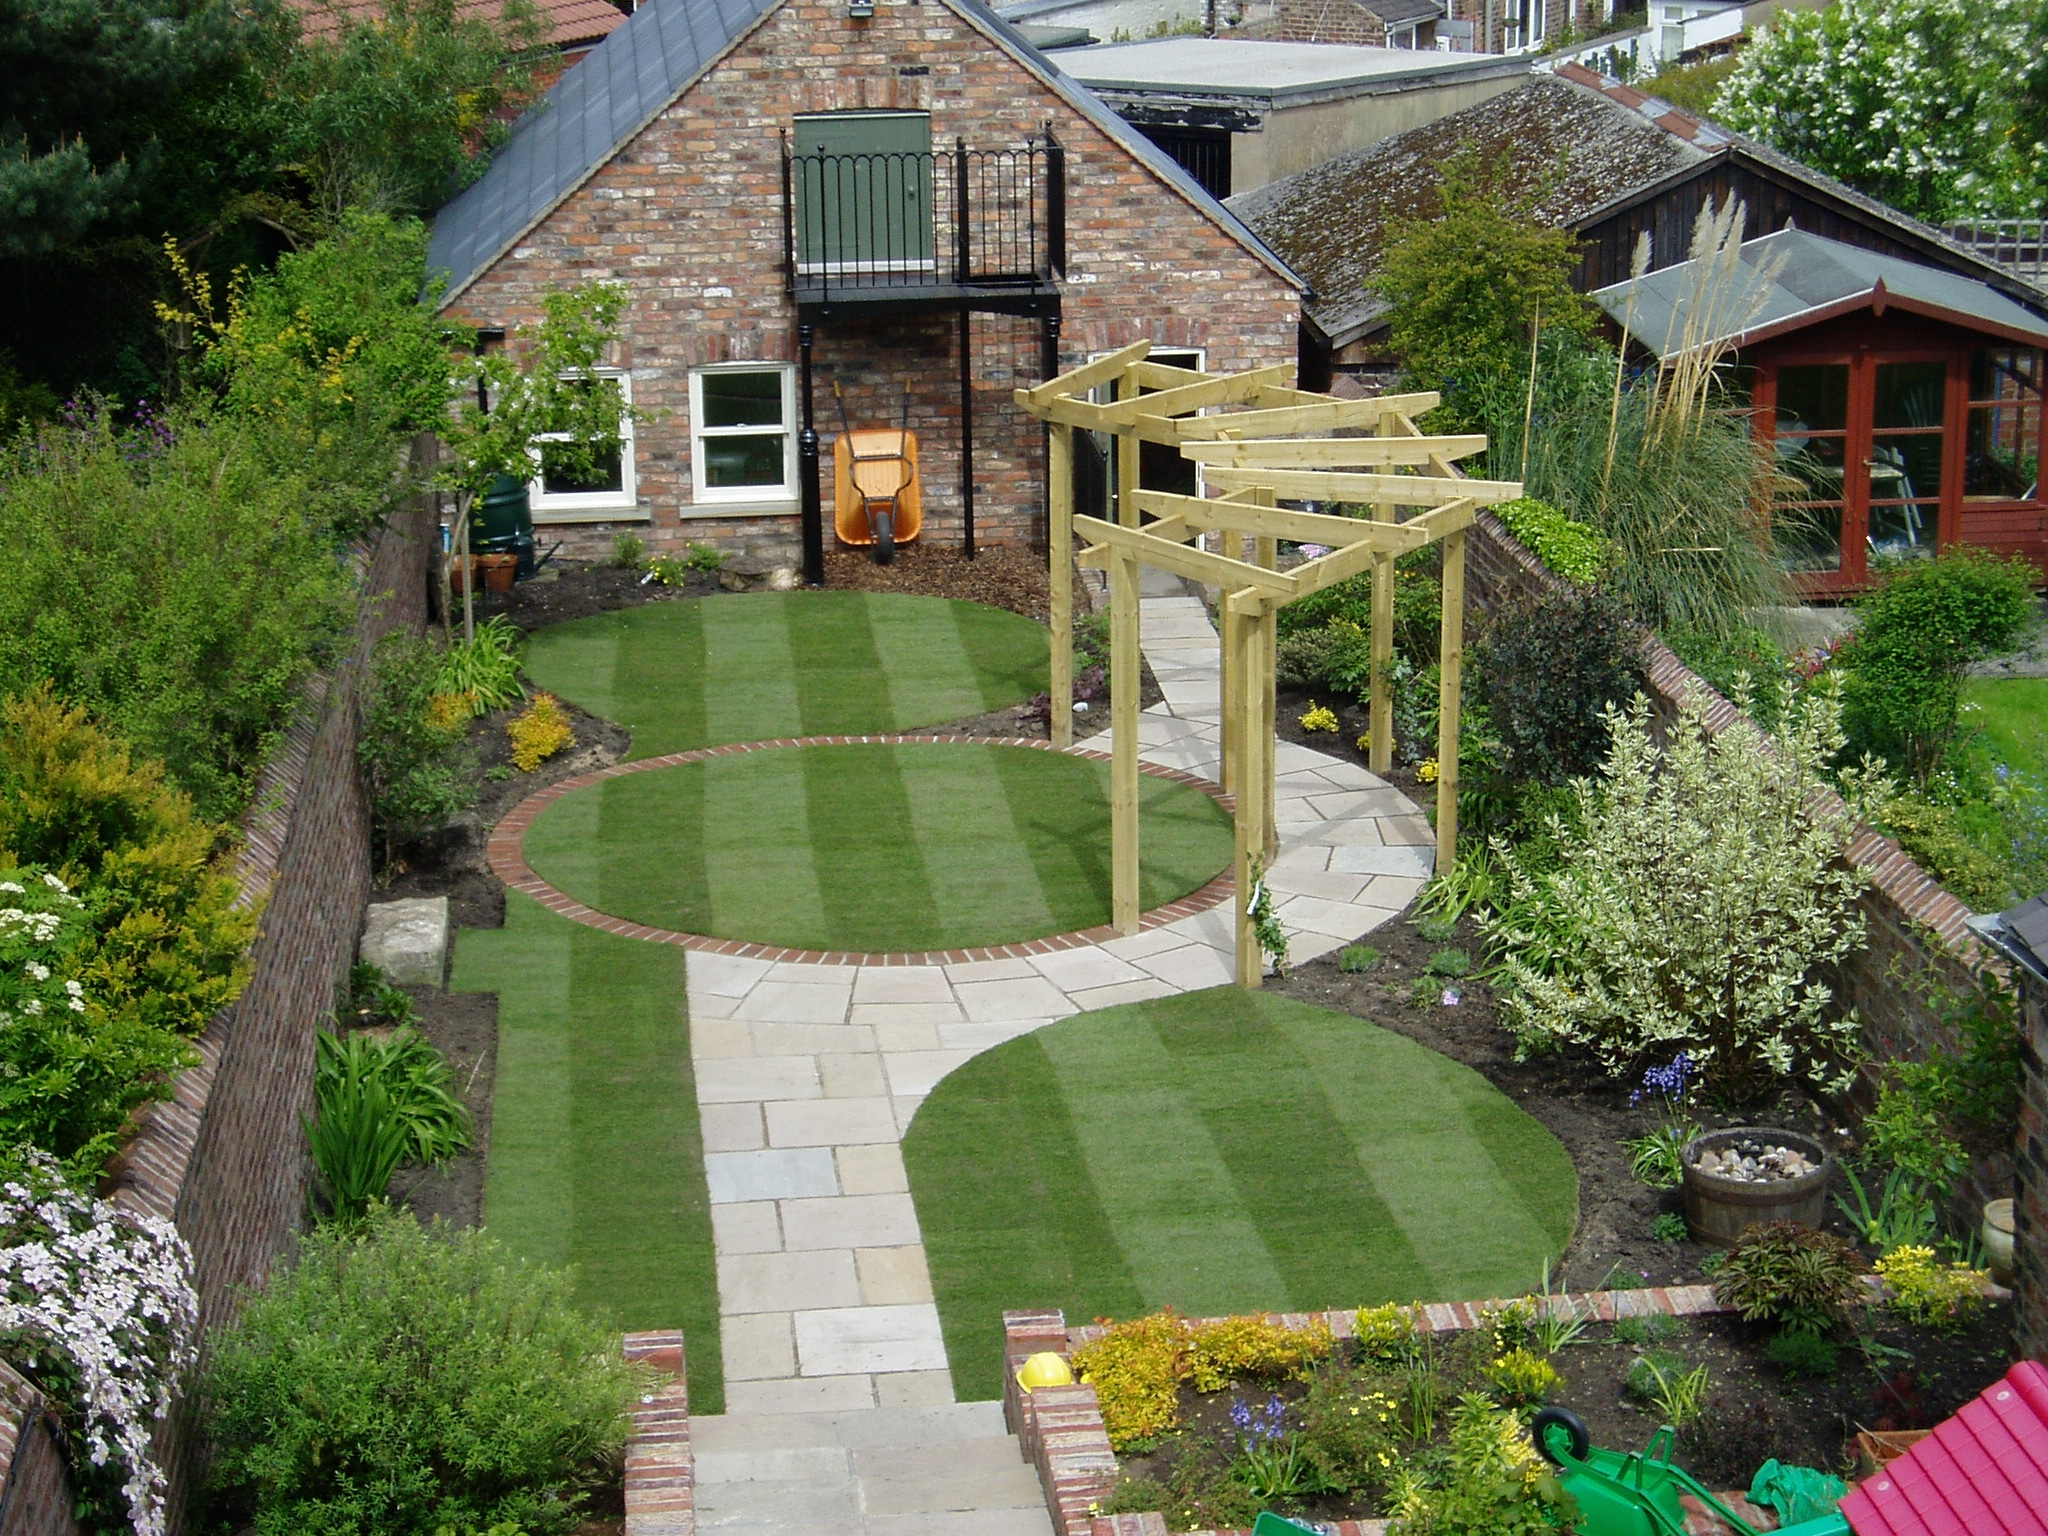 Garden size is the favoured compromise for home buyers